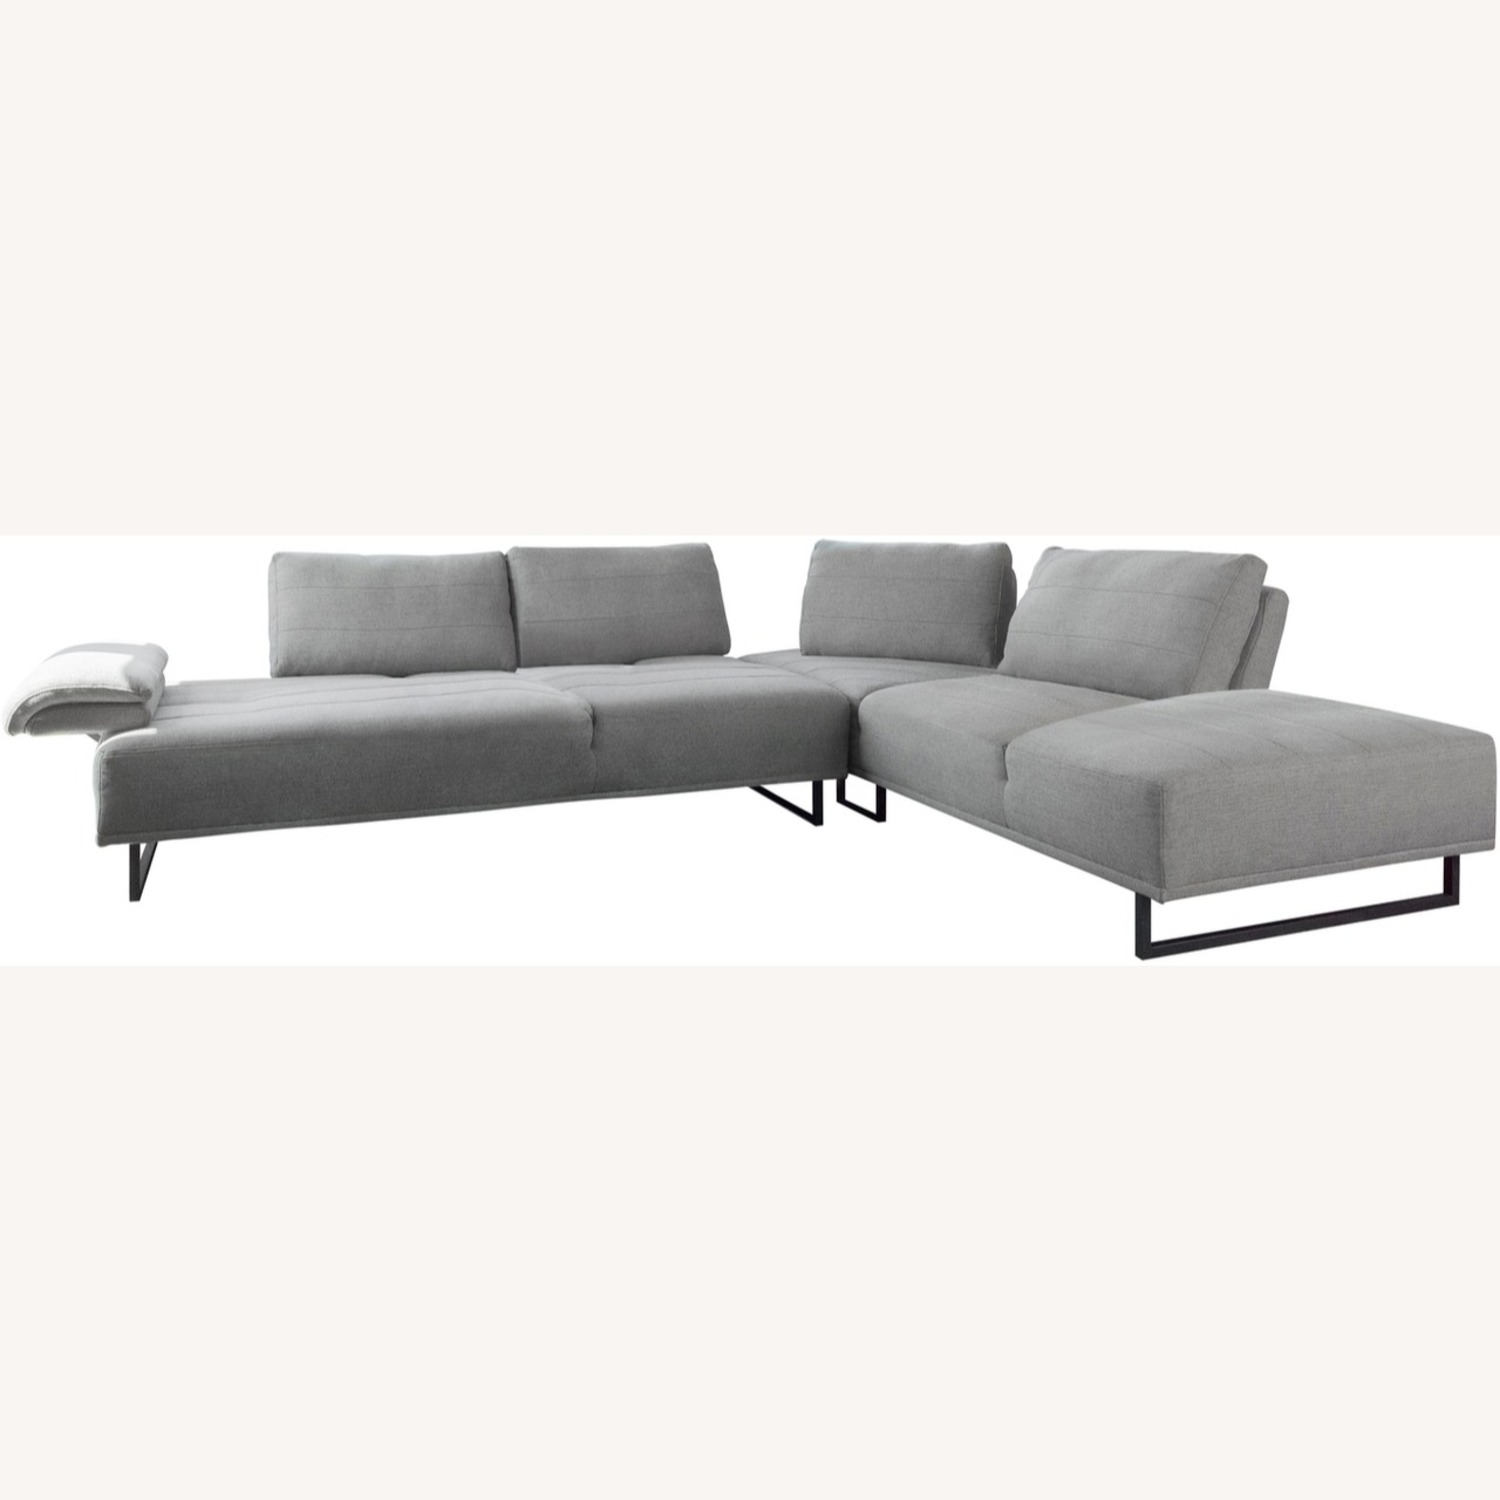 Sectional In Taupe Woven Fabric Upholstery - image-1